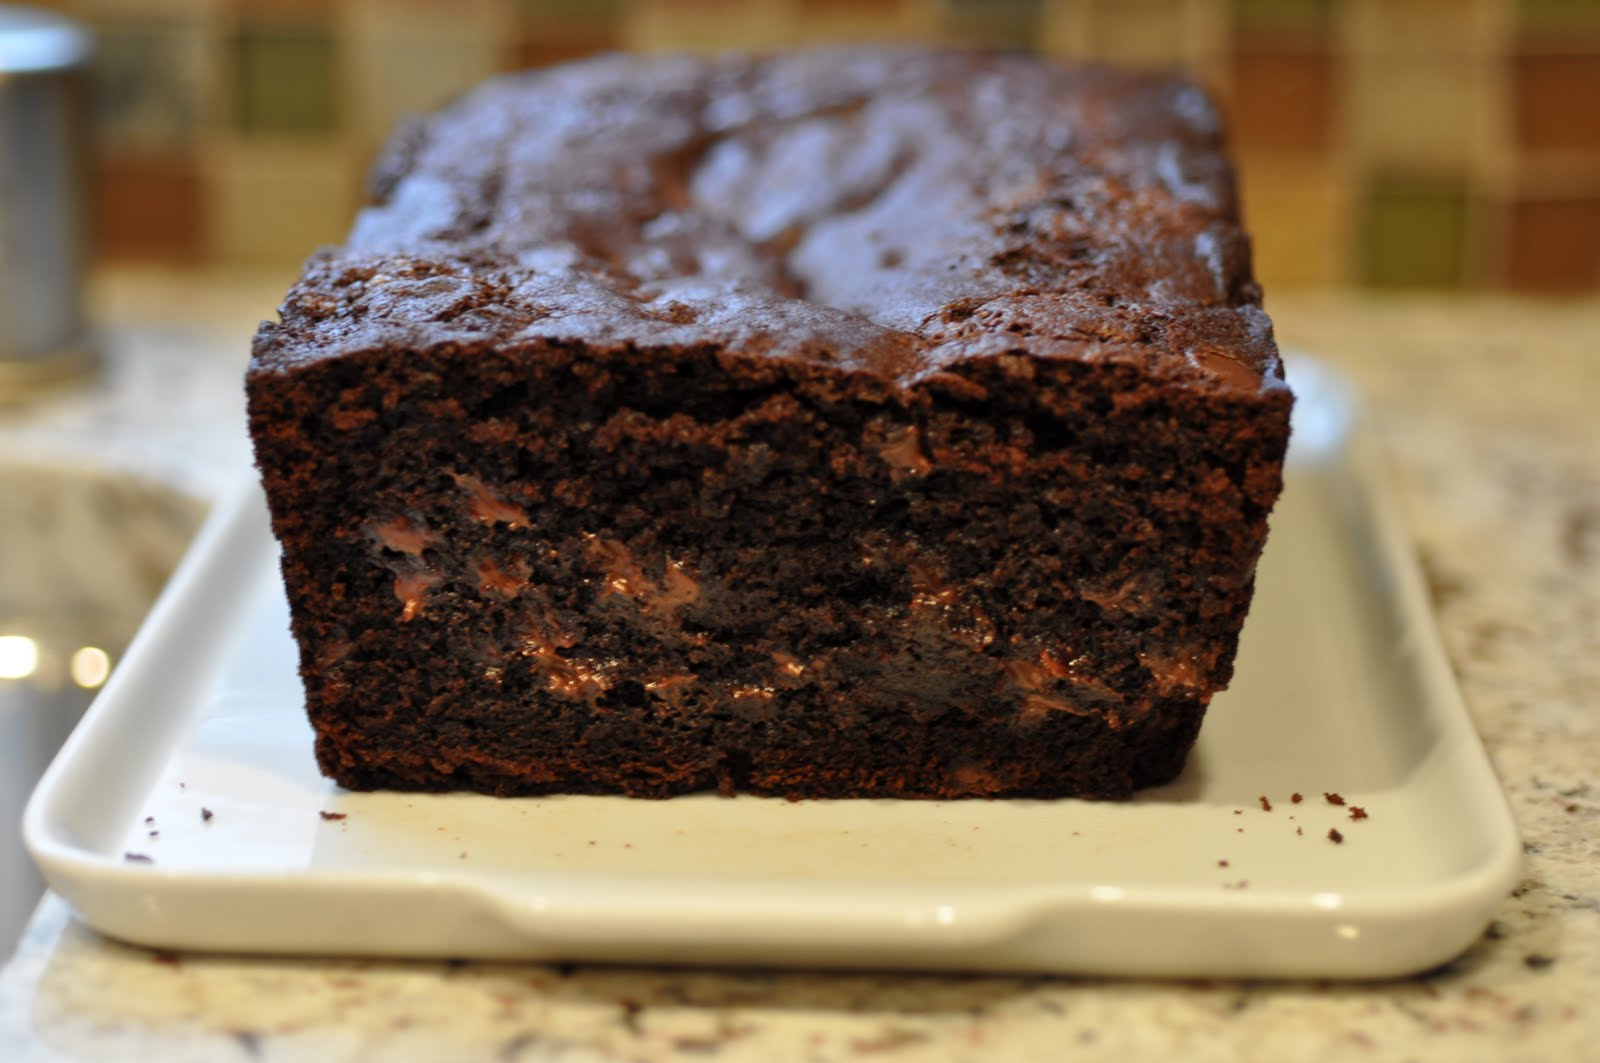 Lethally Delicious: Everyday Chocolate Cake